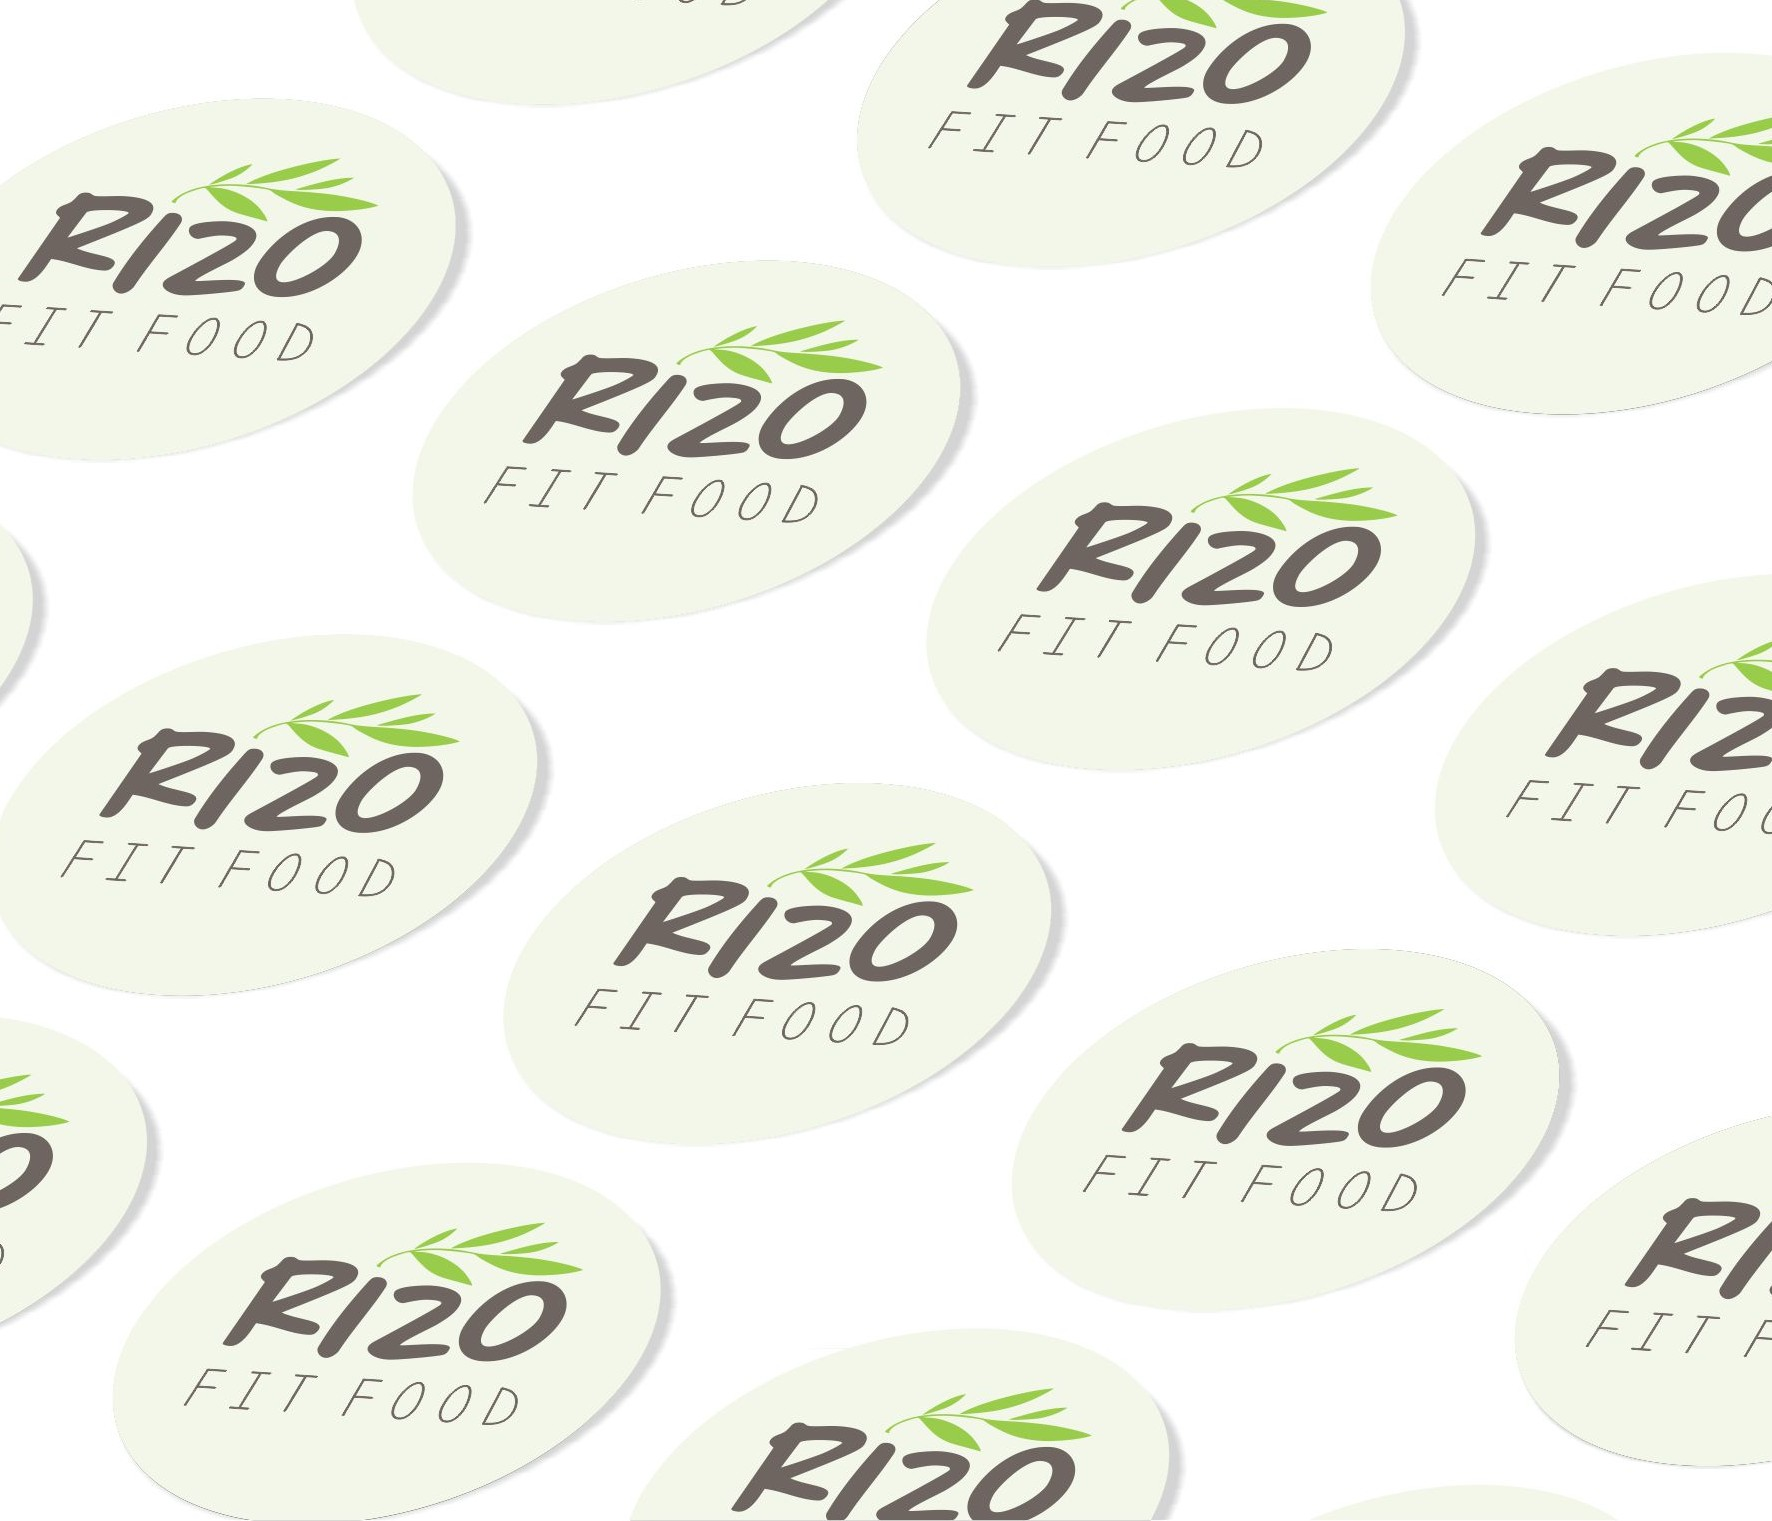 RIZO FIT FOOD